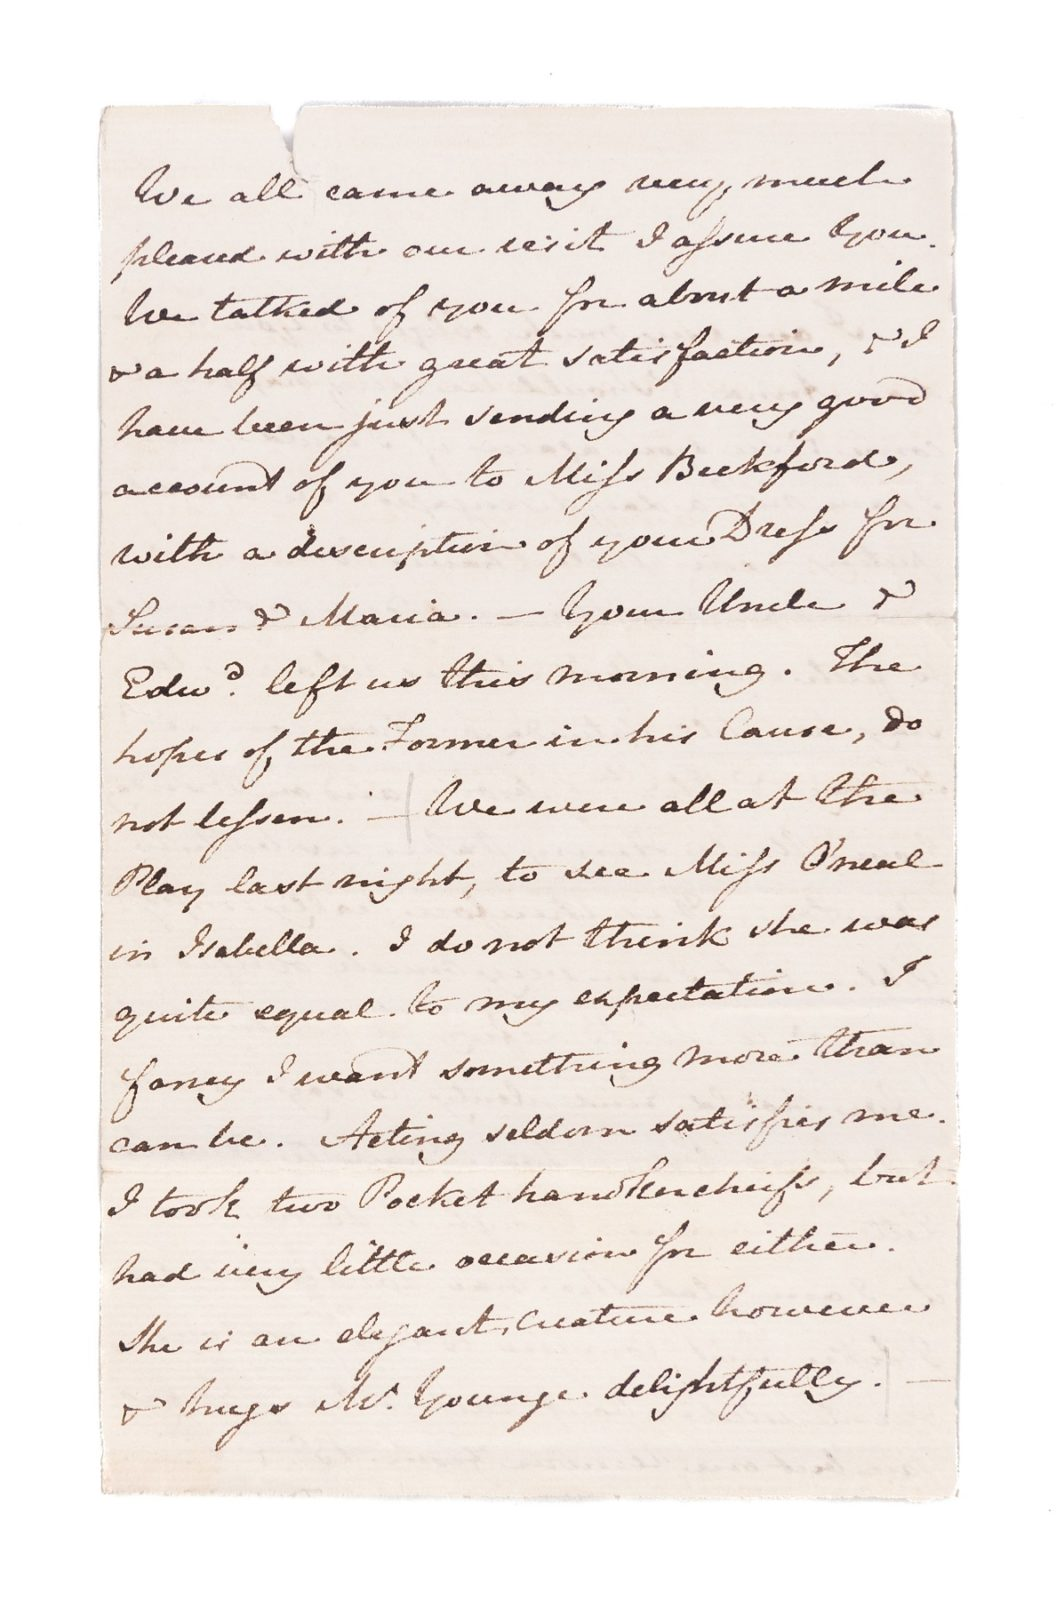 Letter from Jane Austen to Anna Lefroy, 29 November 1814. Page 2